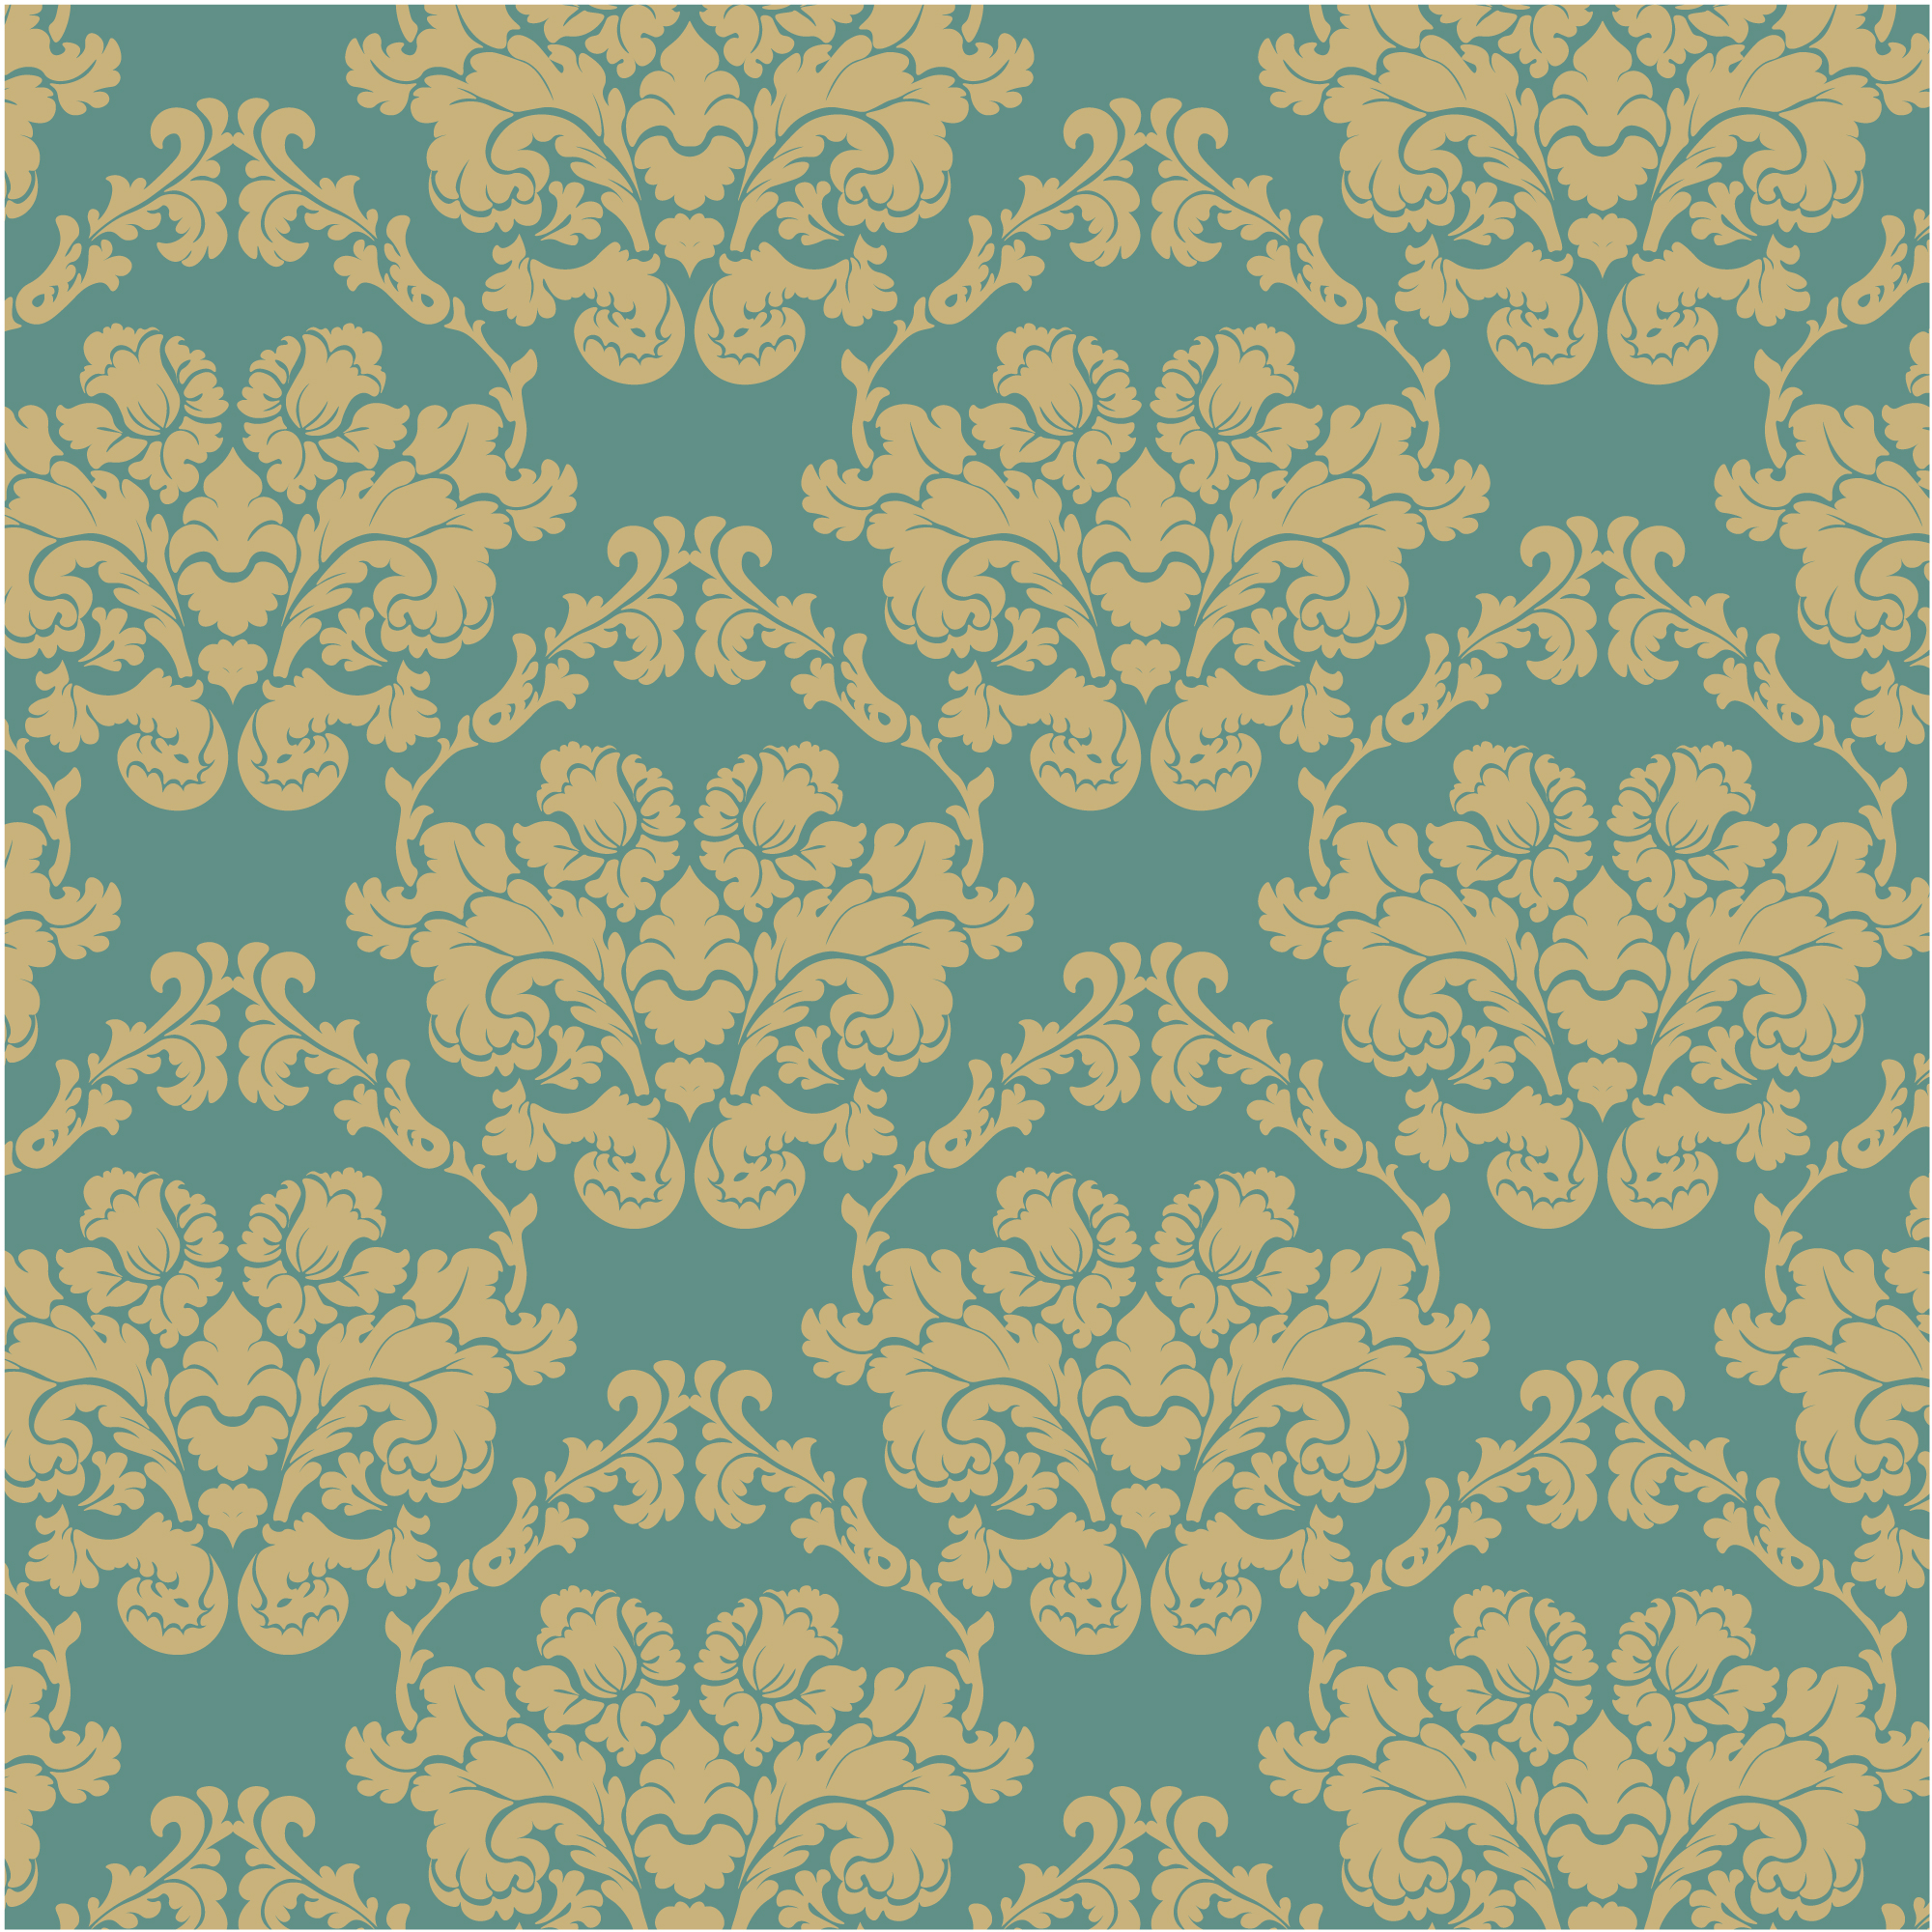 Blue and golden ornamental pattern background